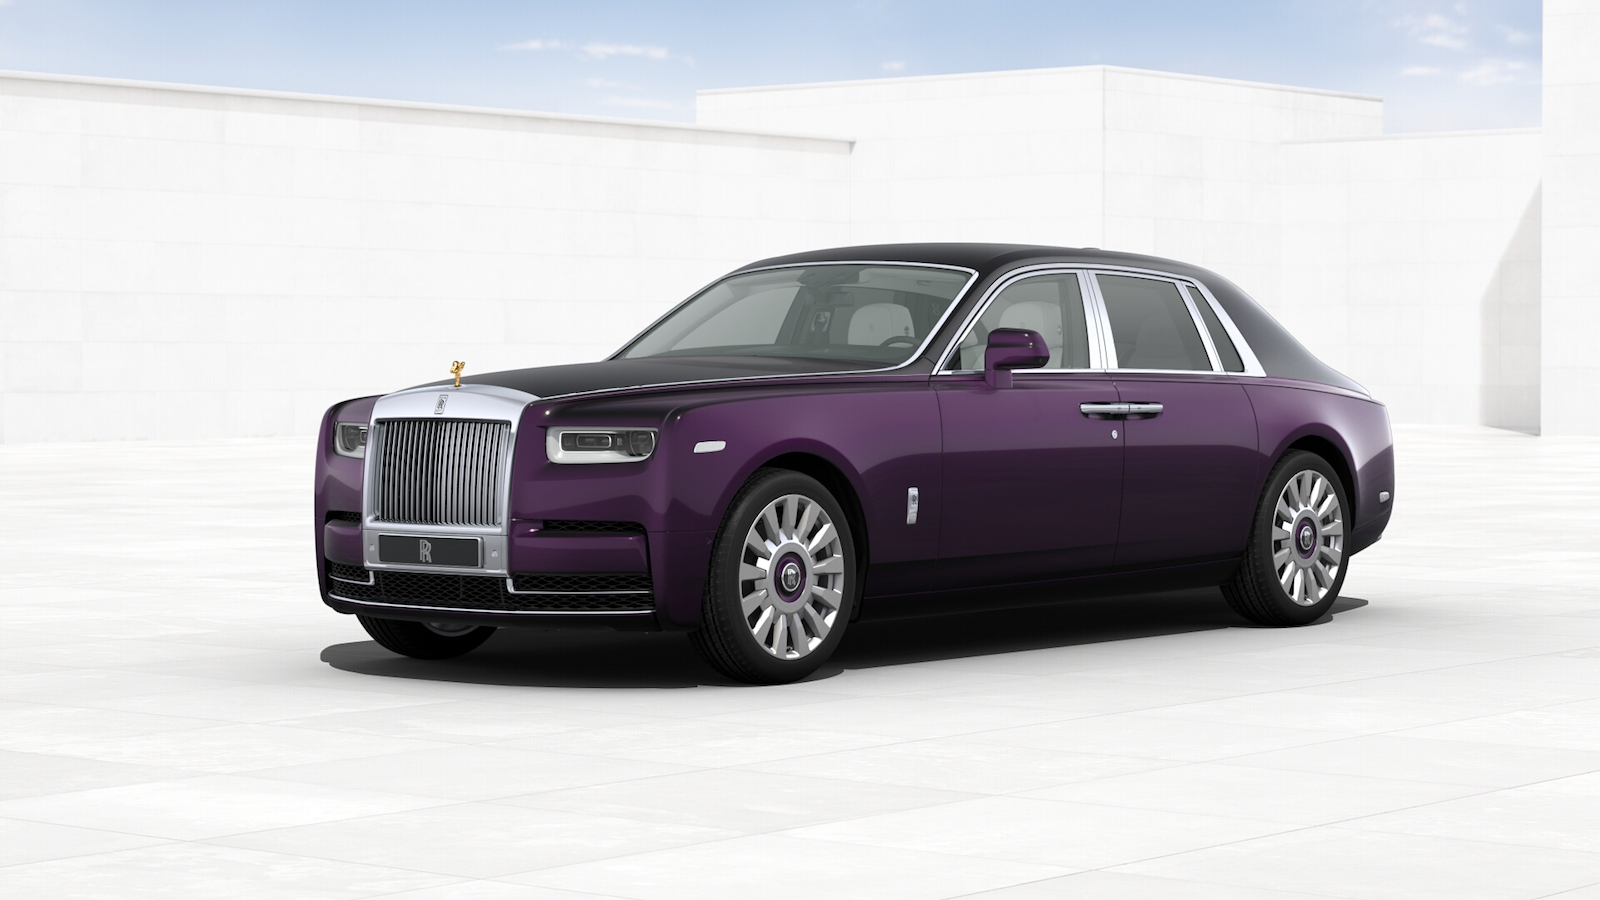 You Can Now Configure Your Own 2018 Rolls Royce Phantom Autoguide